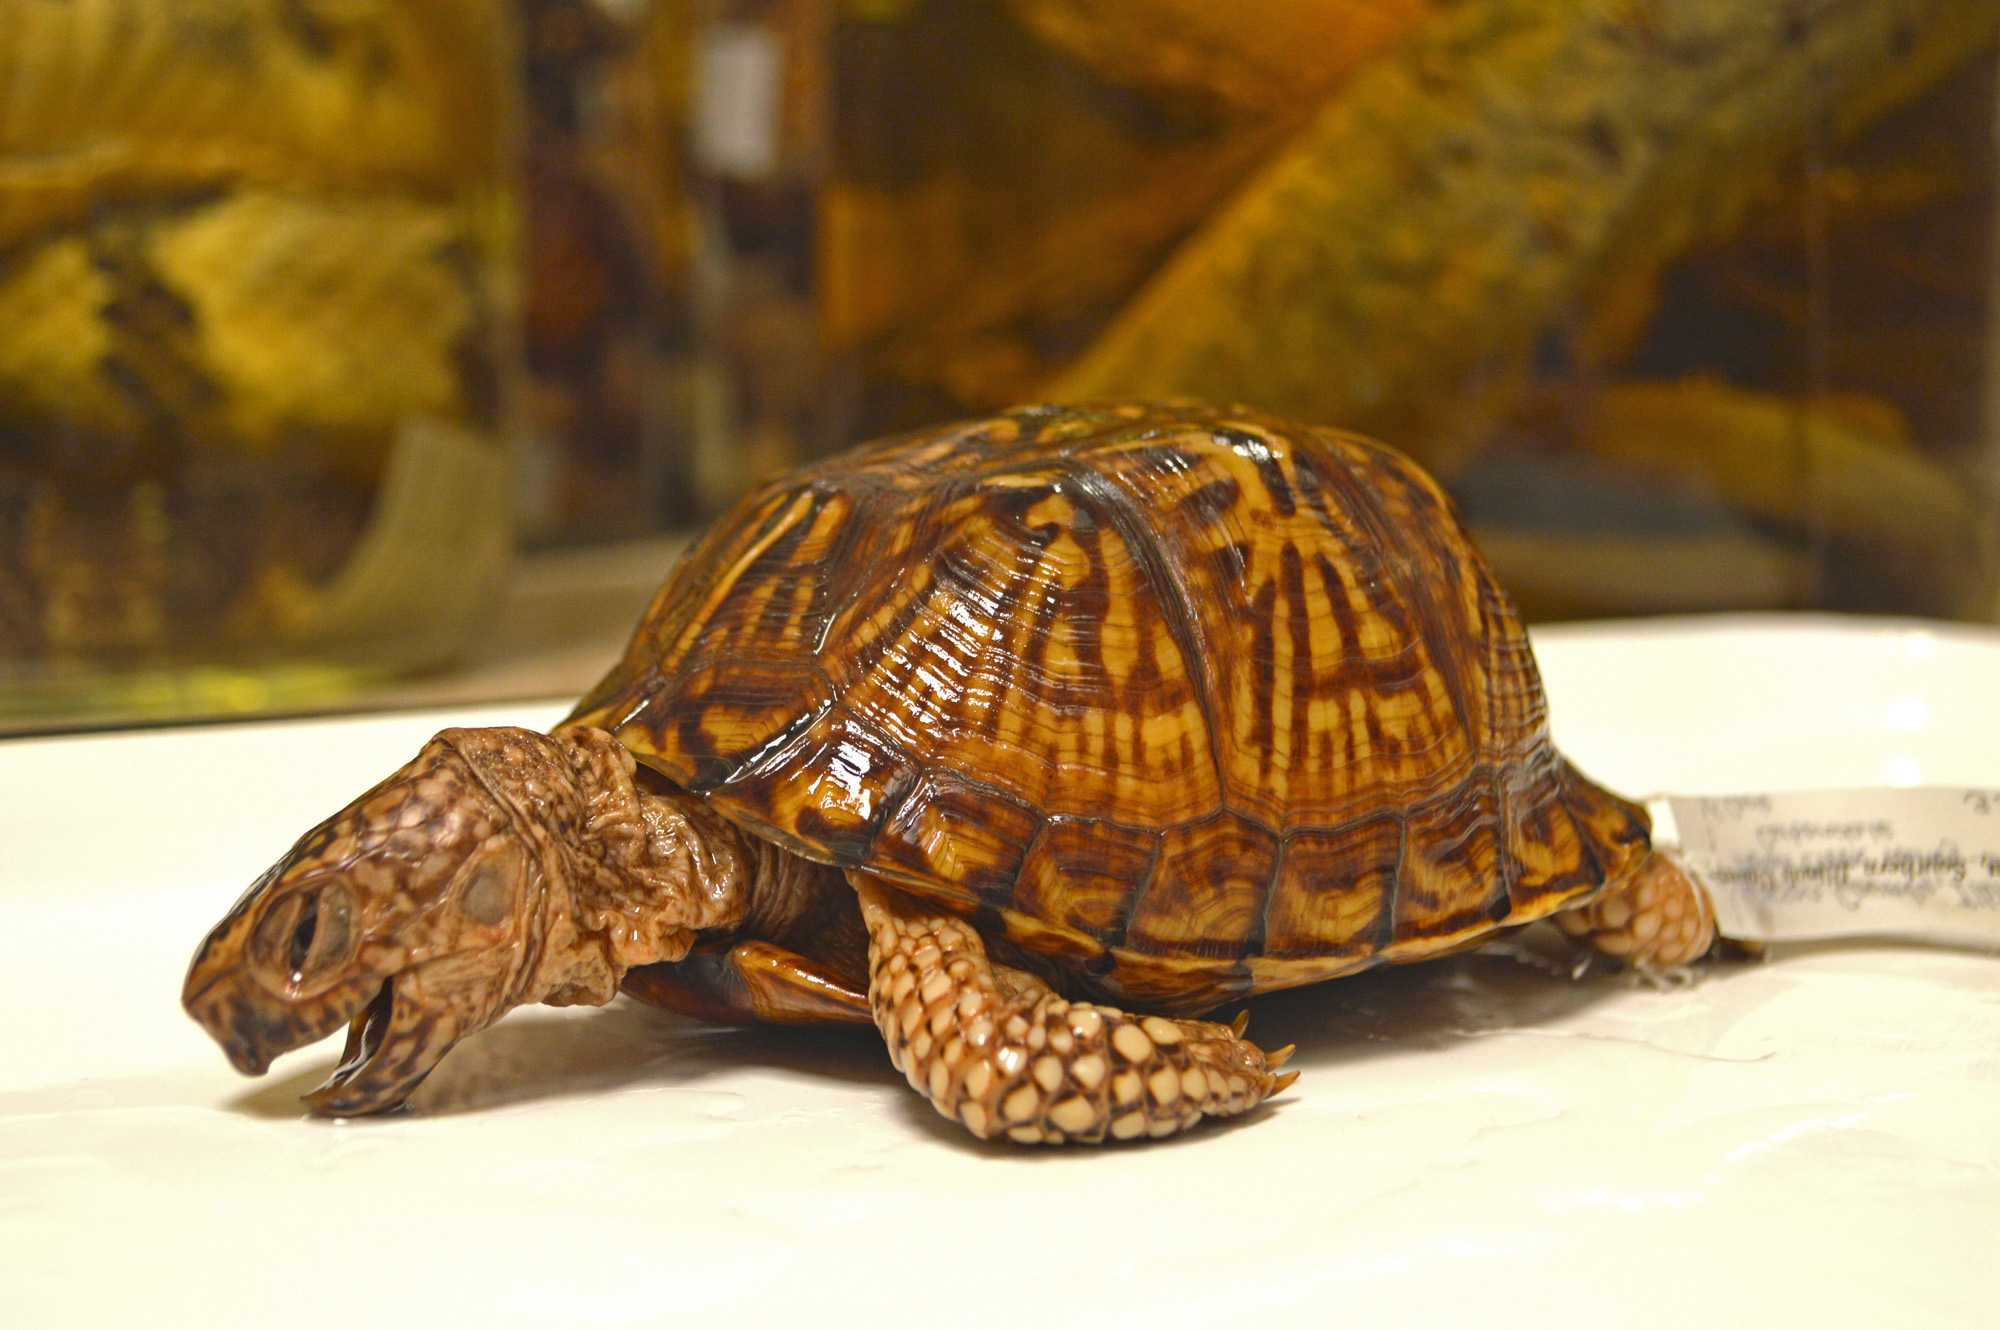 This species of turtle is the Terrapene carolina, otherwise known as the common box turtle. This specimen was collected in Jackson County, Illinois over 75 years ago and is part of a collection from Southern Illinois University Carbondale.